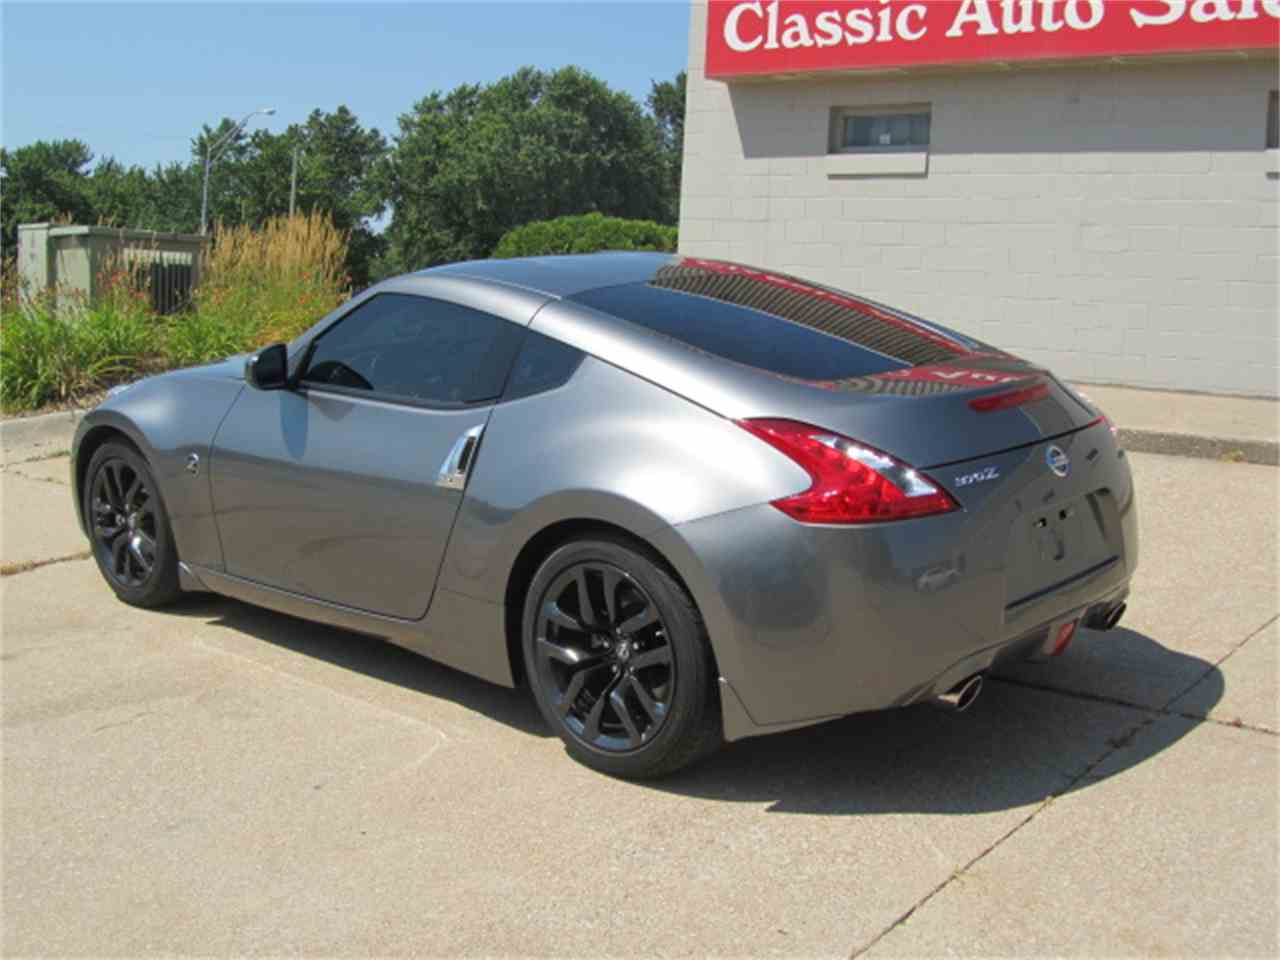 Large Picture of 2016 Nissan 370Z located in Nebraska - $24,900.00 Offered by Classic Auto Sales - LI7Y